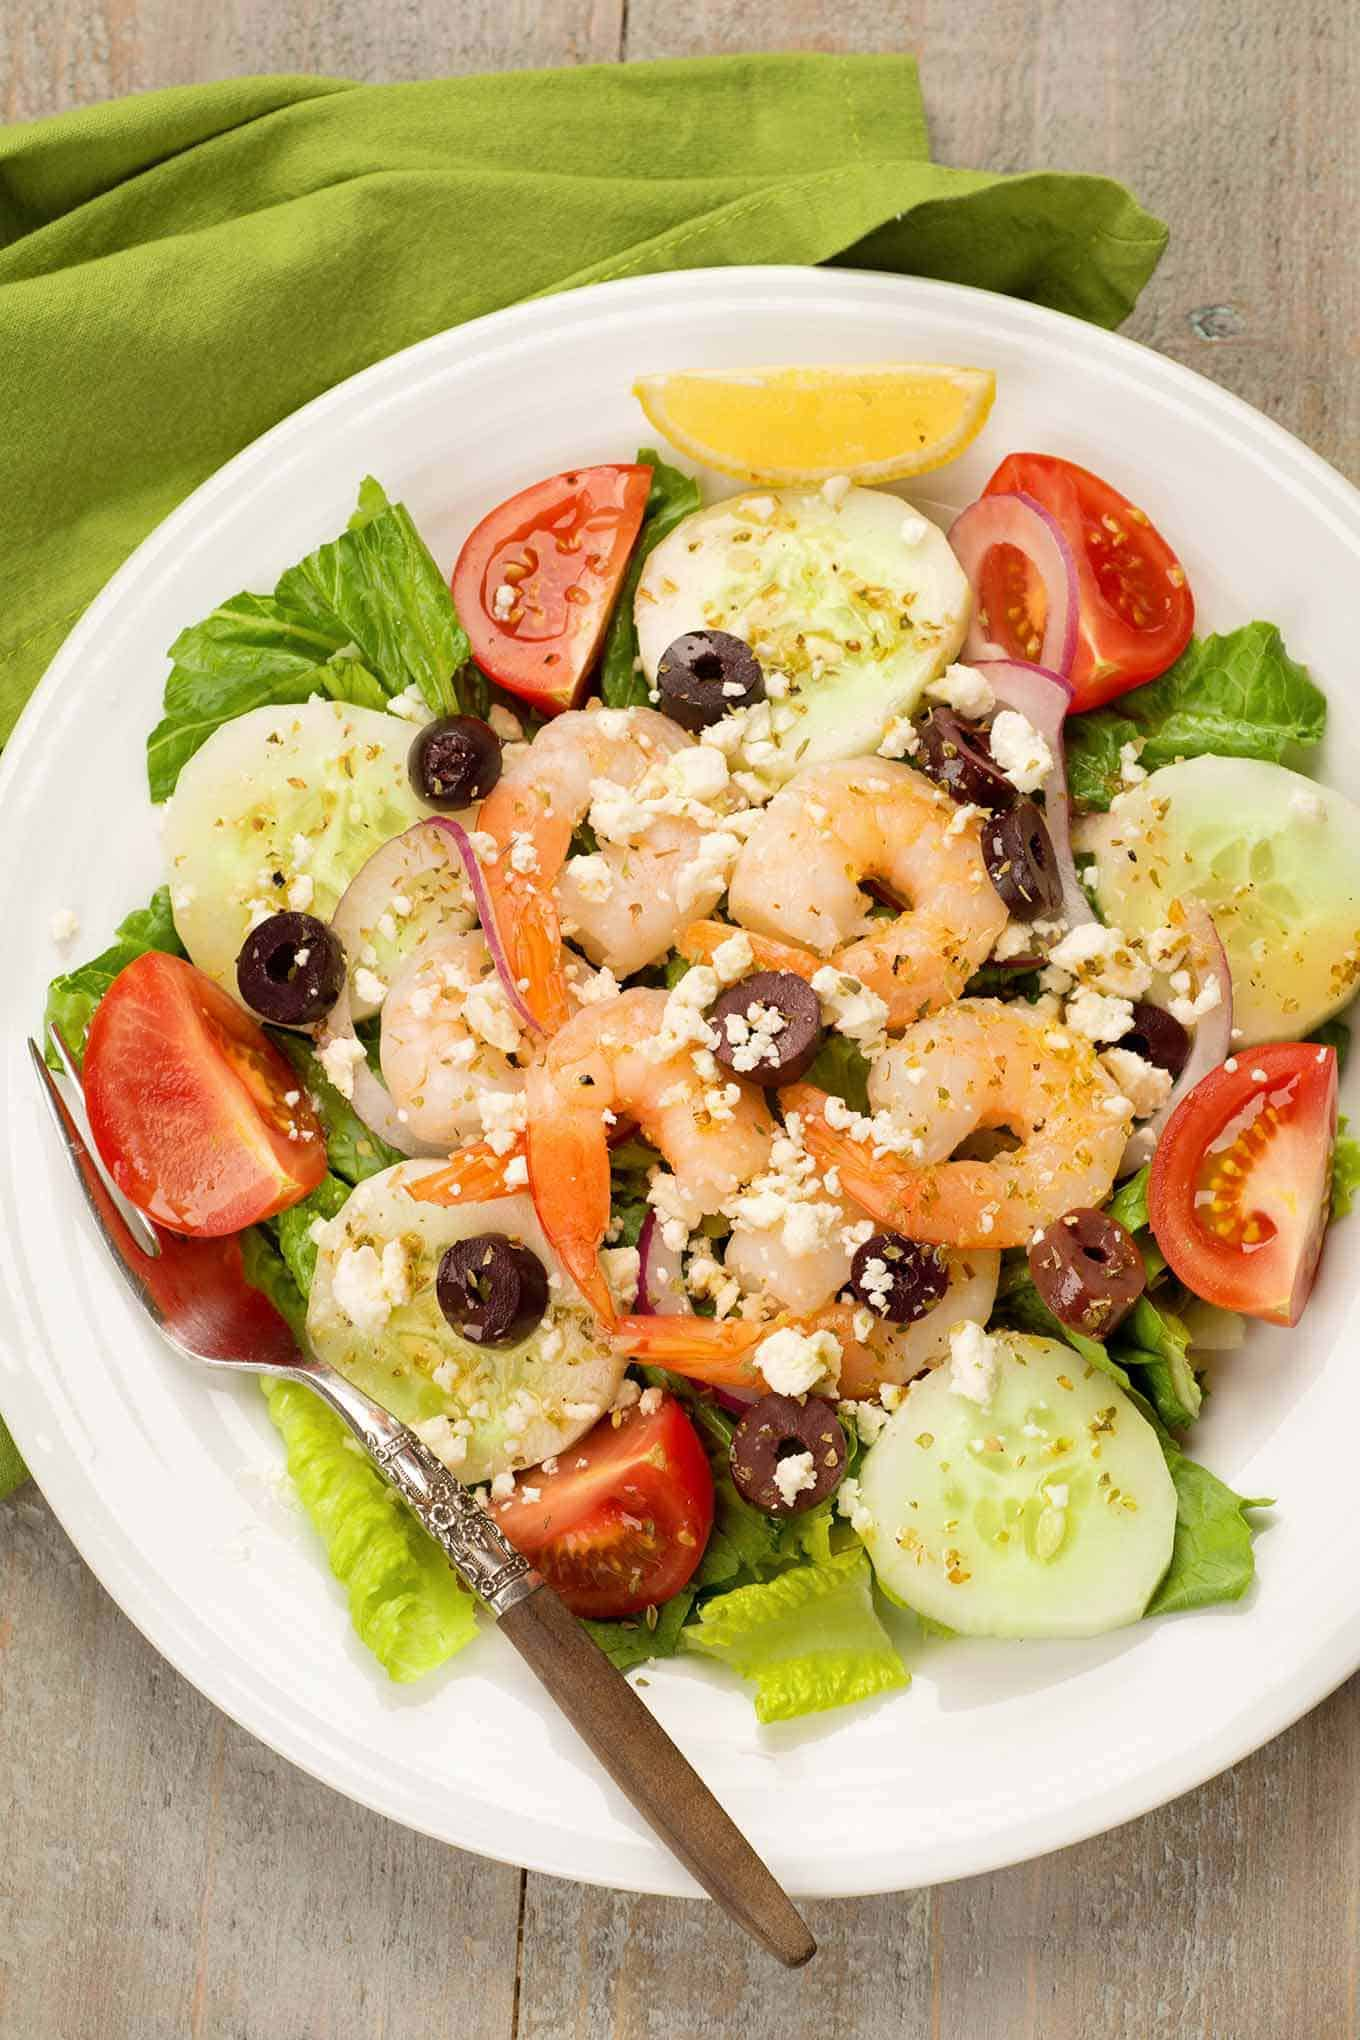 A serving of Greek salad with shrimp topped with crumbled feta cheese and Kalamata olives.